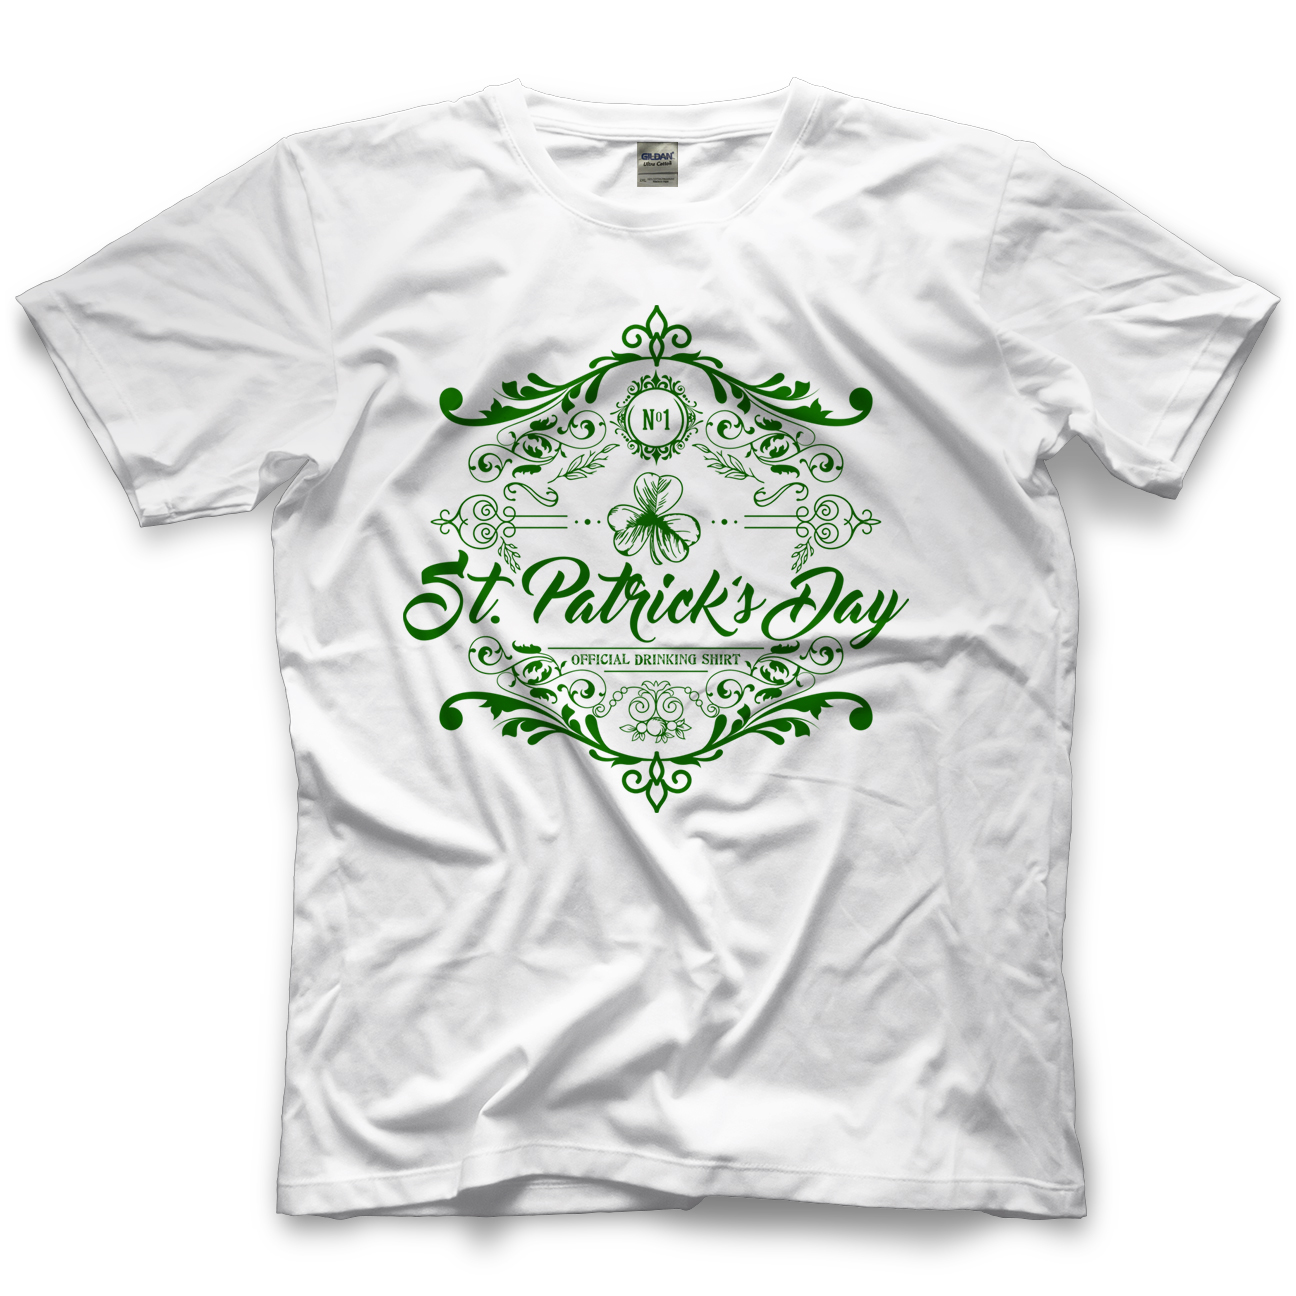 It's Time to Drink St. Patrick's Drinking Shirt - Green T-shirt